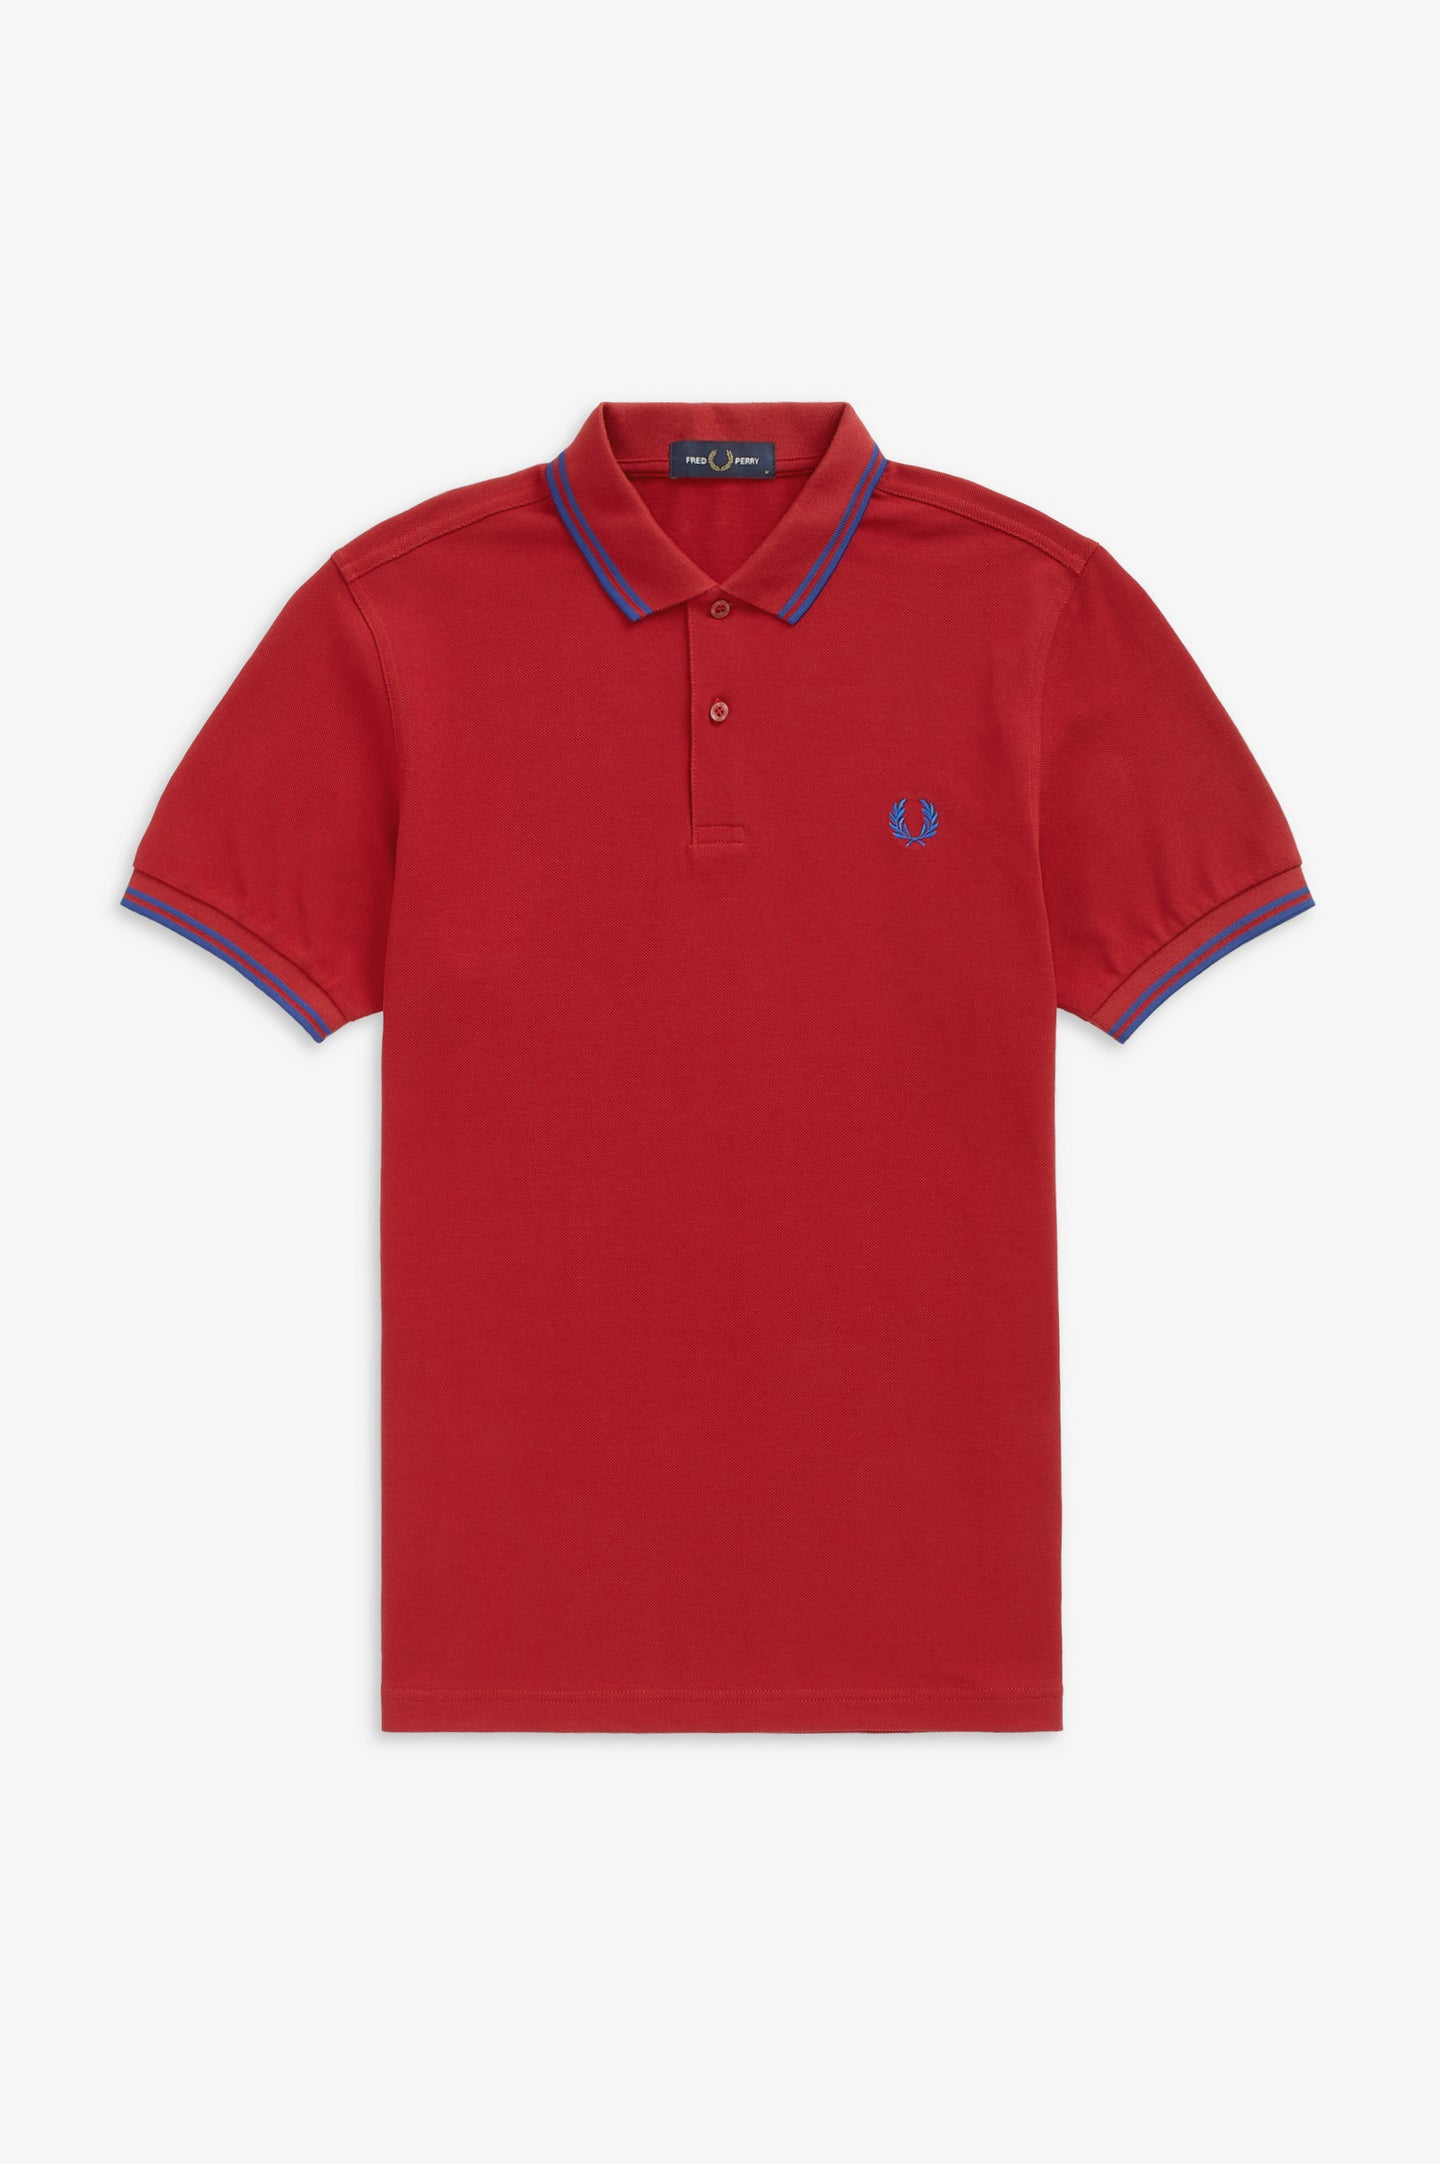 FRED PERRY - T-SHIRT - L45 DEEP RED/COBALT